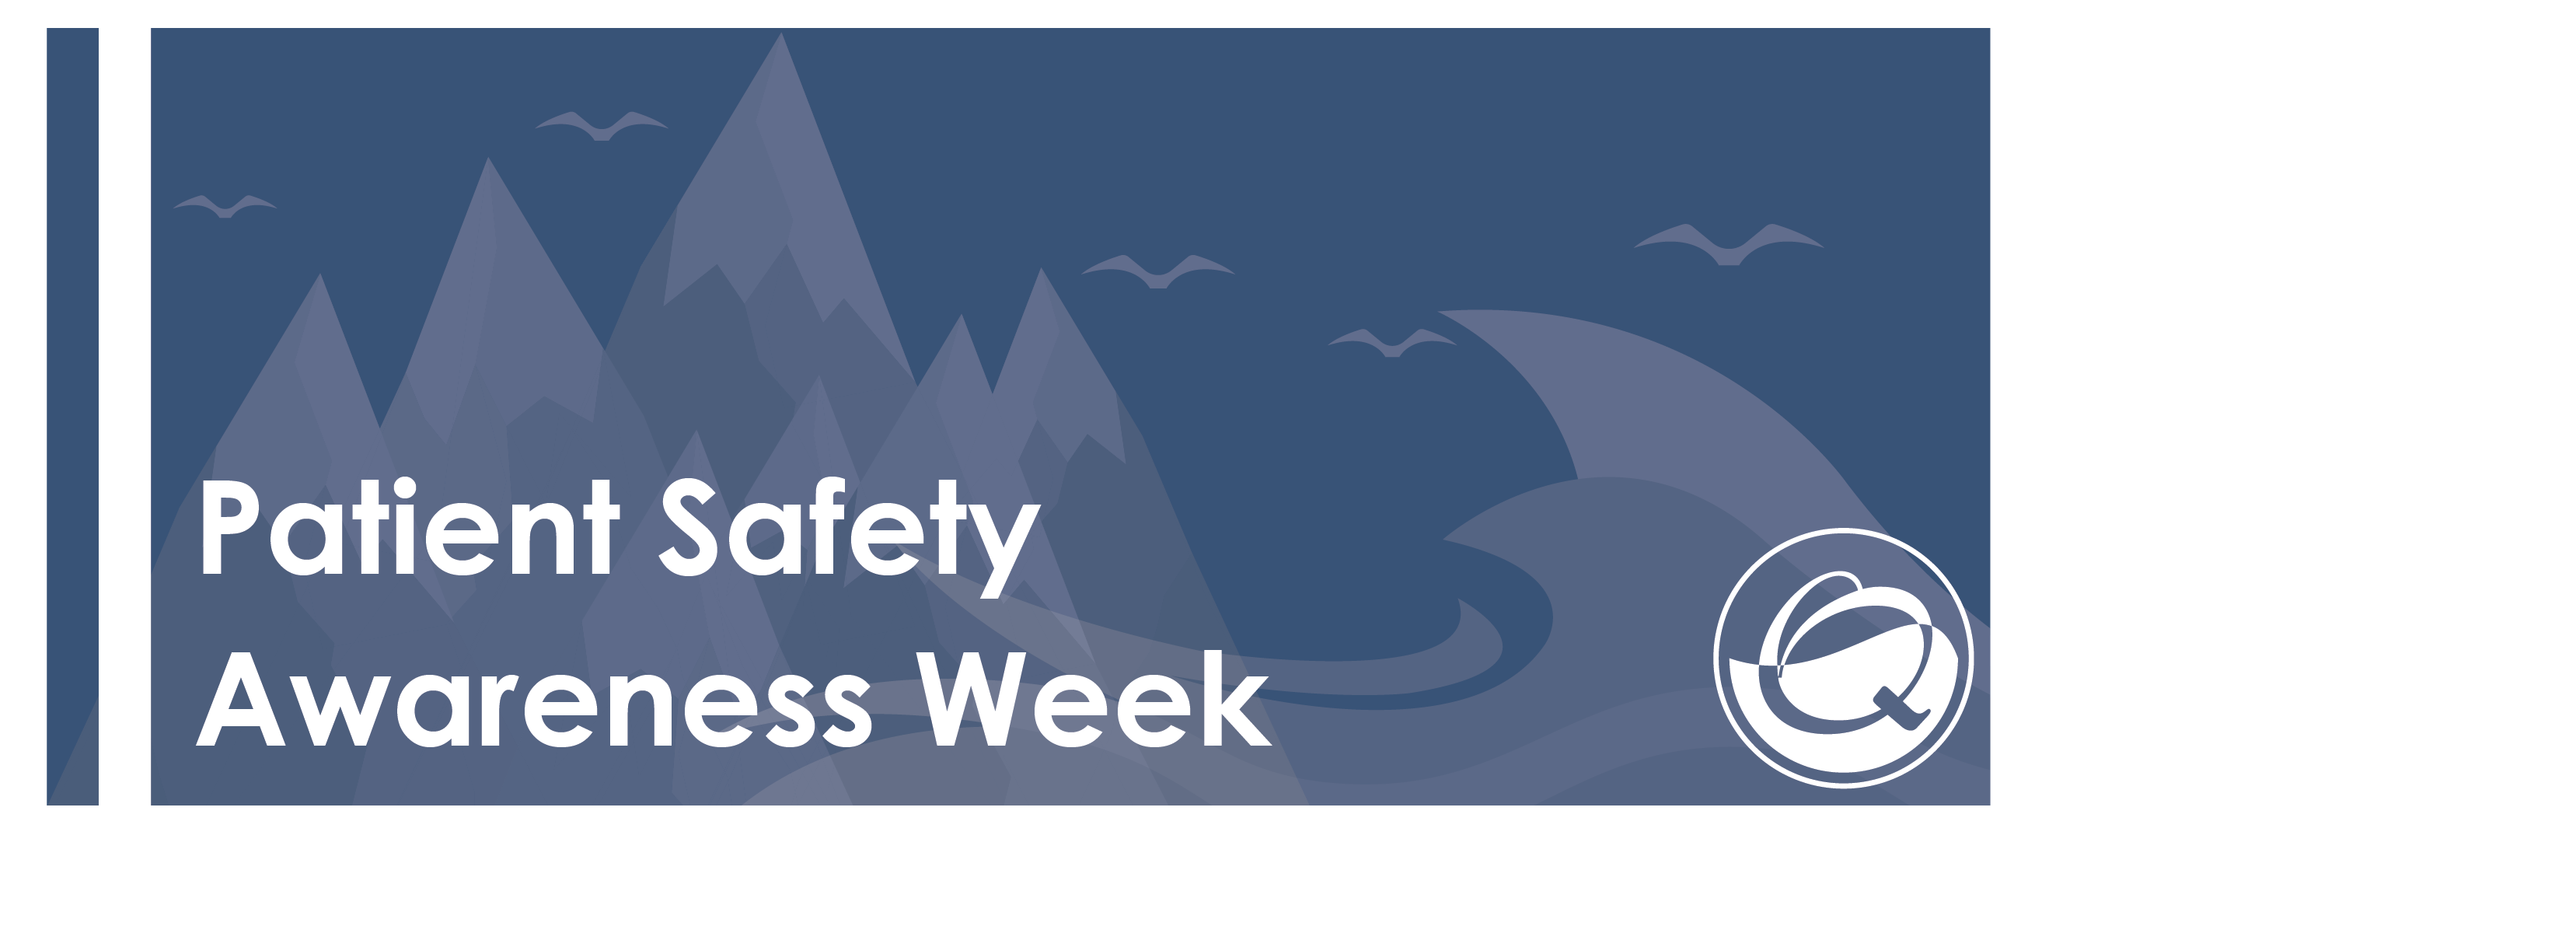 Patient Safety Awareness Week Banner